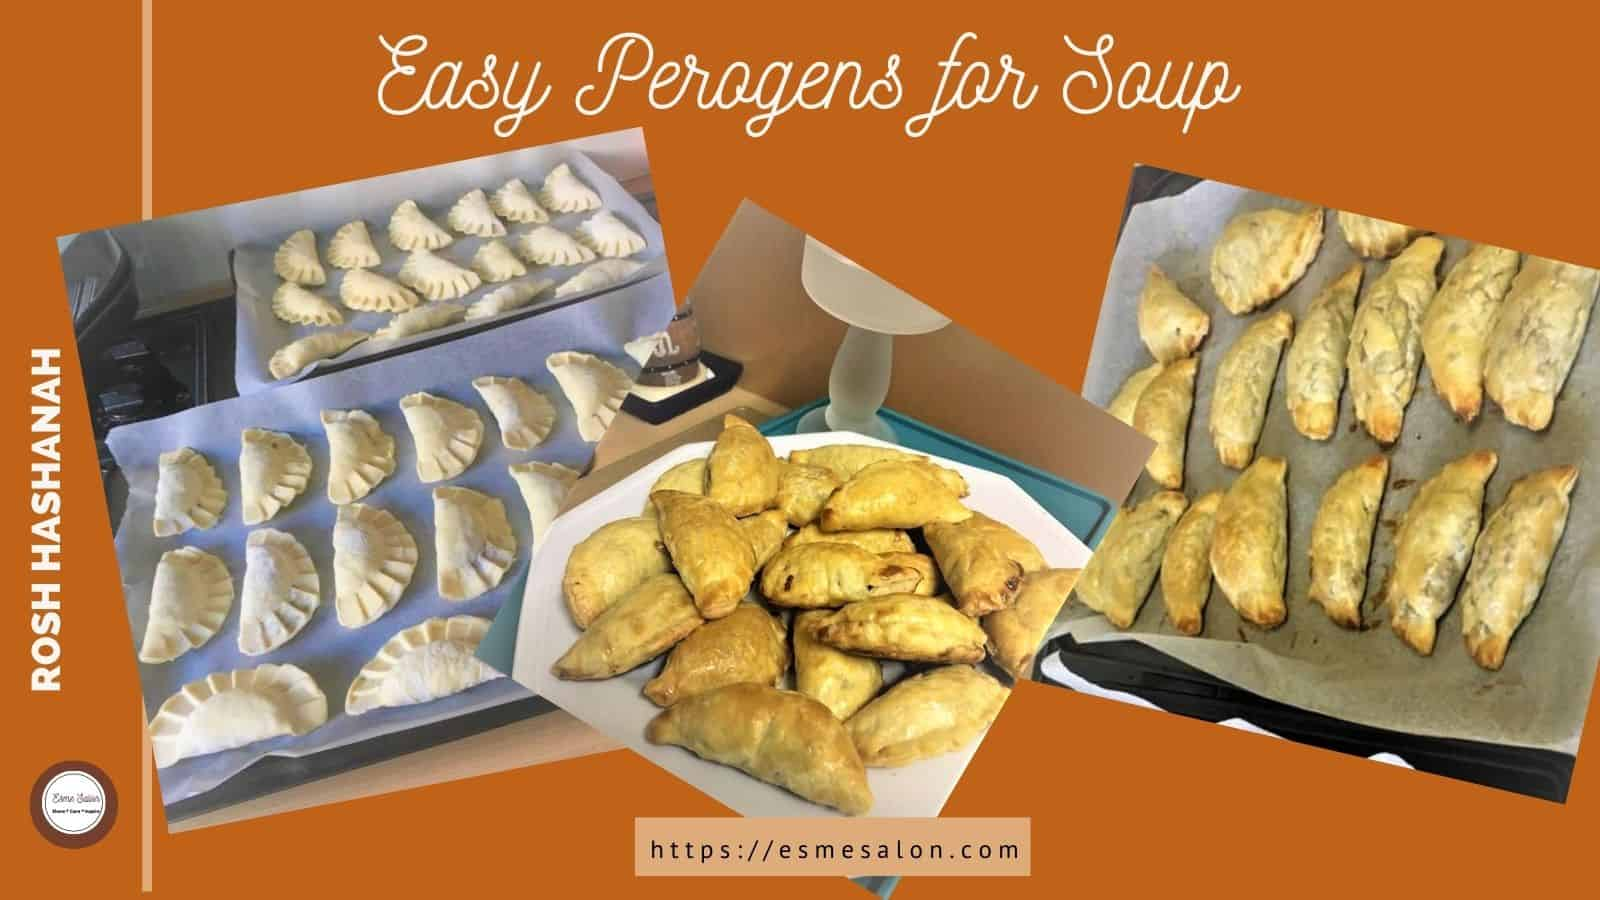 Easy Perogens for Soup